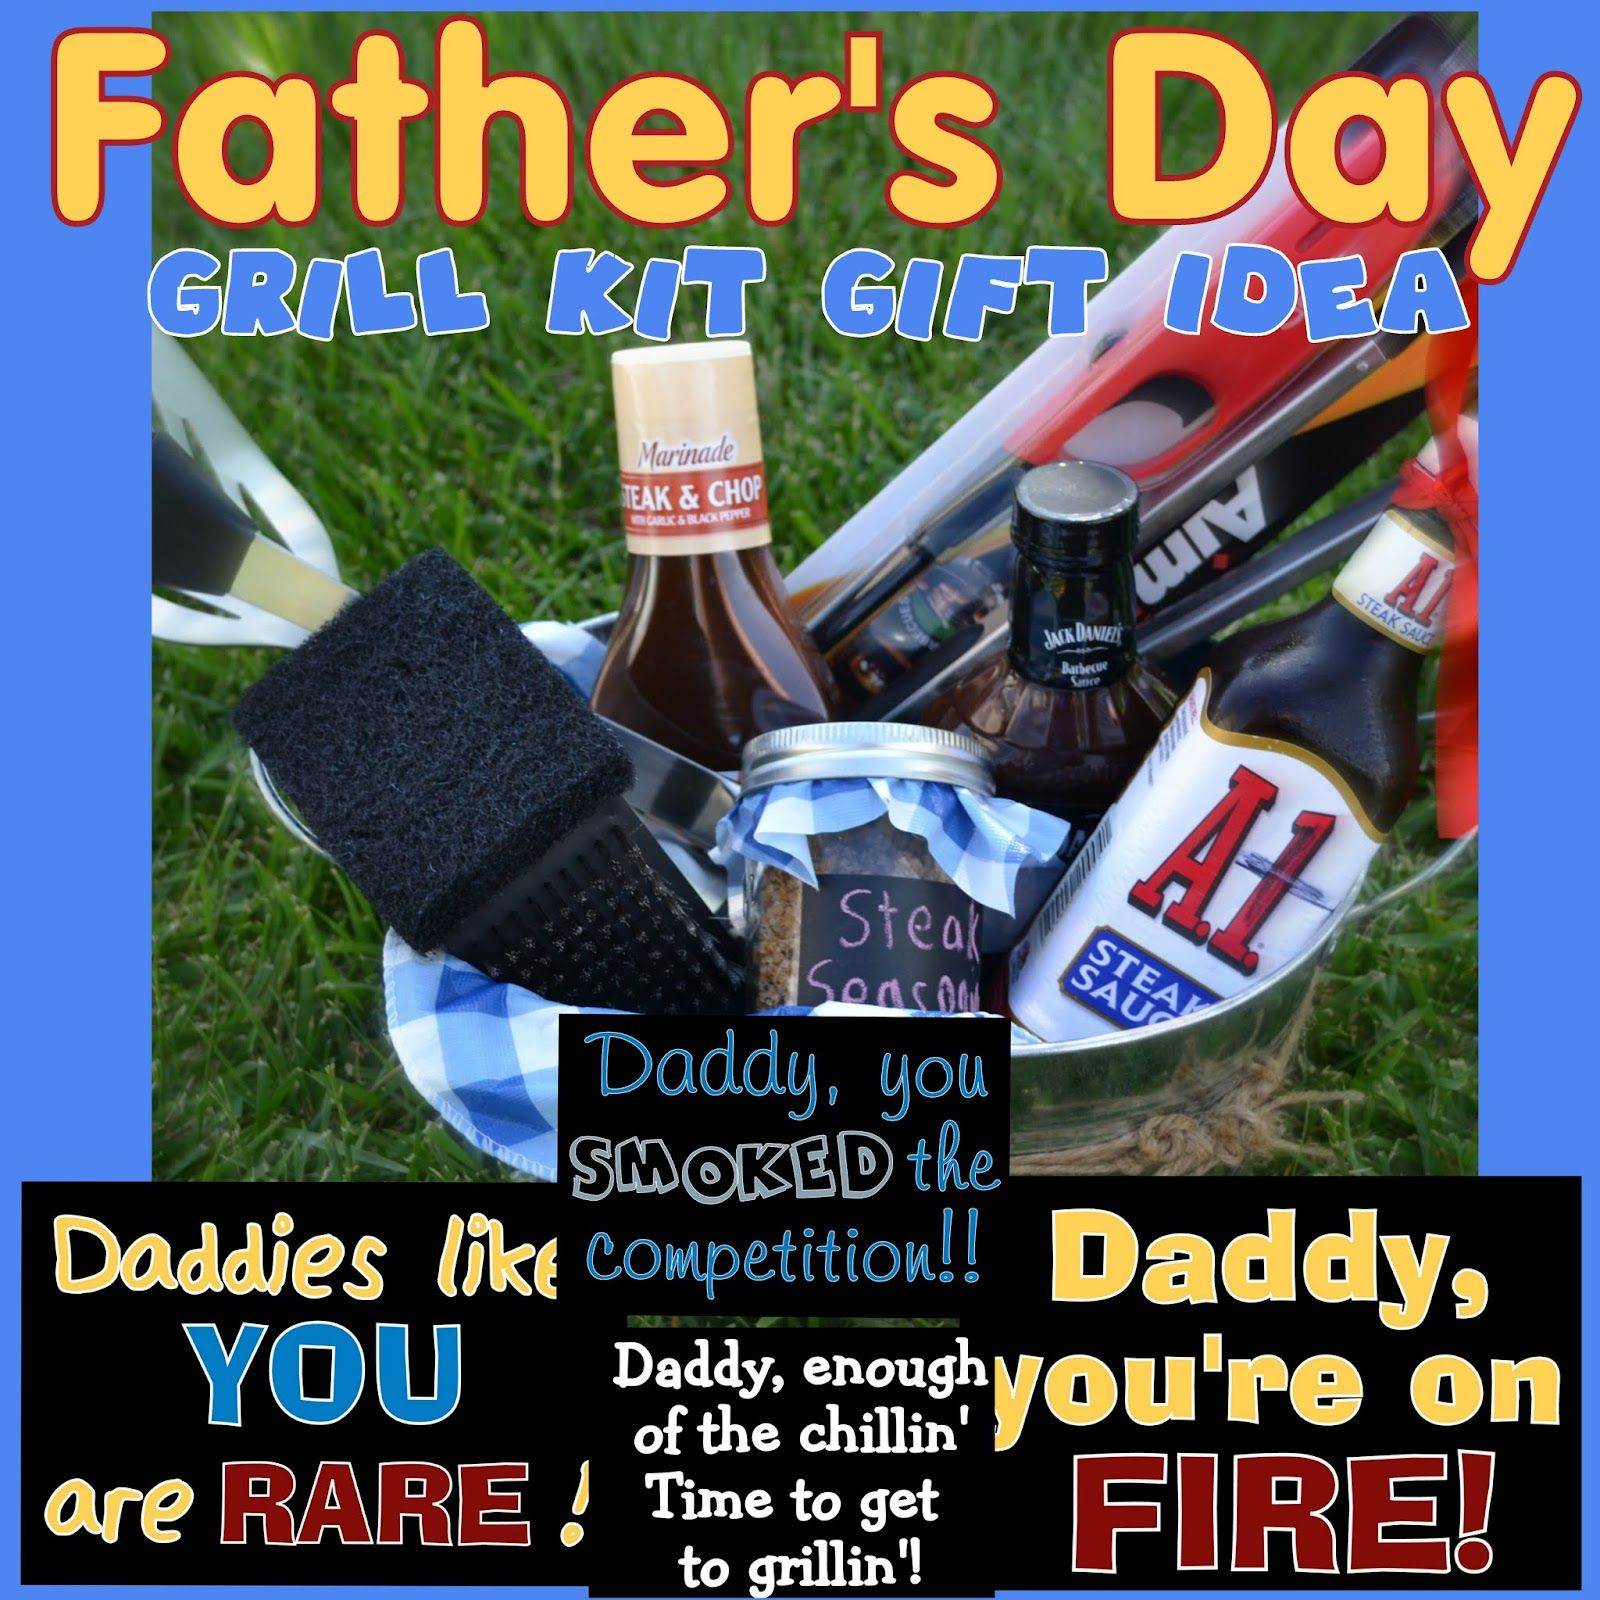 Father's Day Grill Kit #Gift Idea